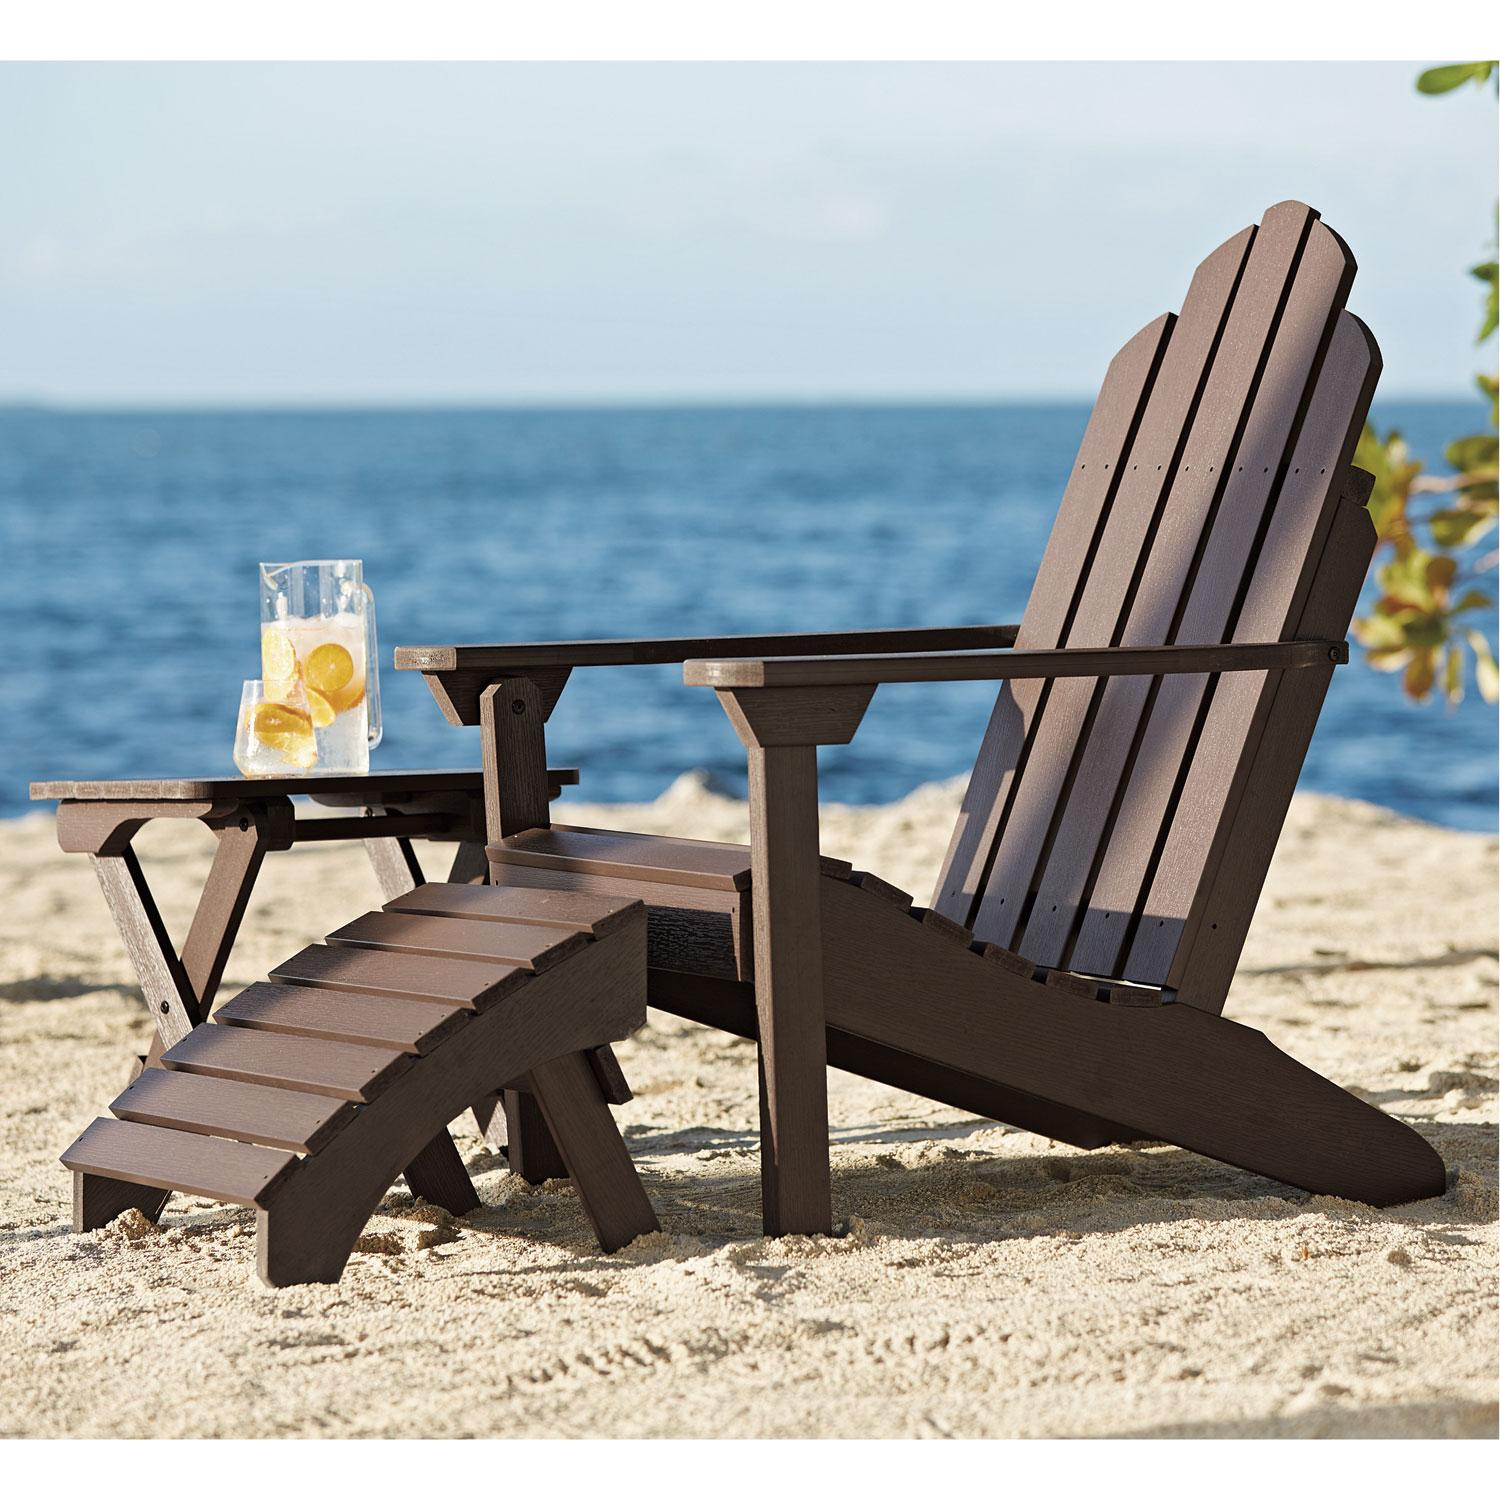 Adirondack Chairs  Outdoor Furniture  Bark  The Company